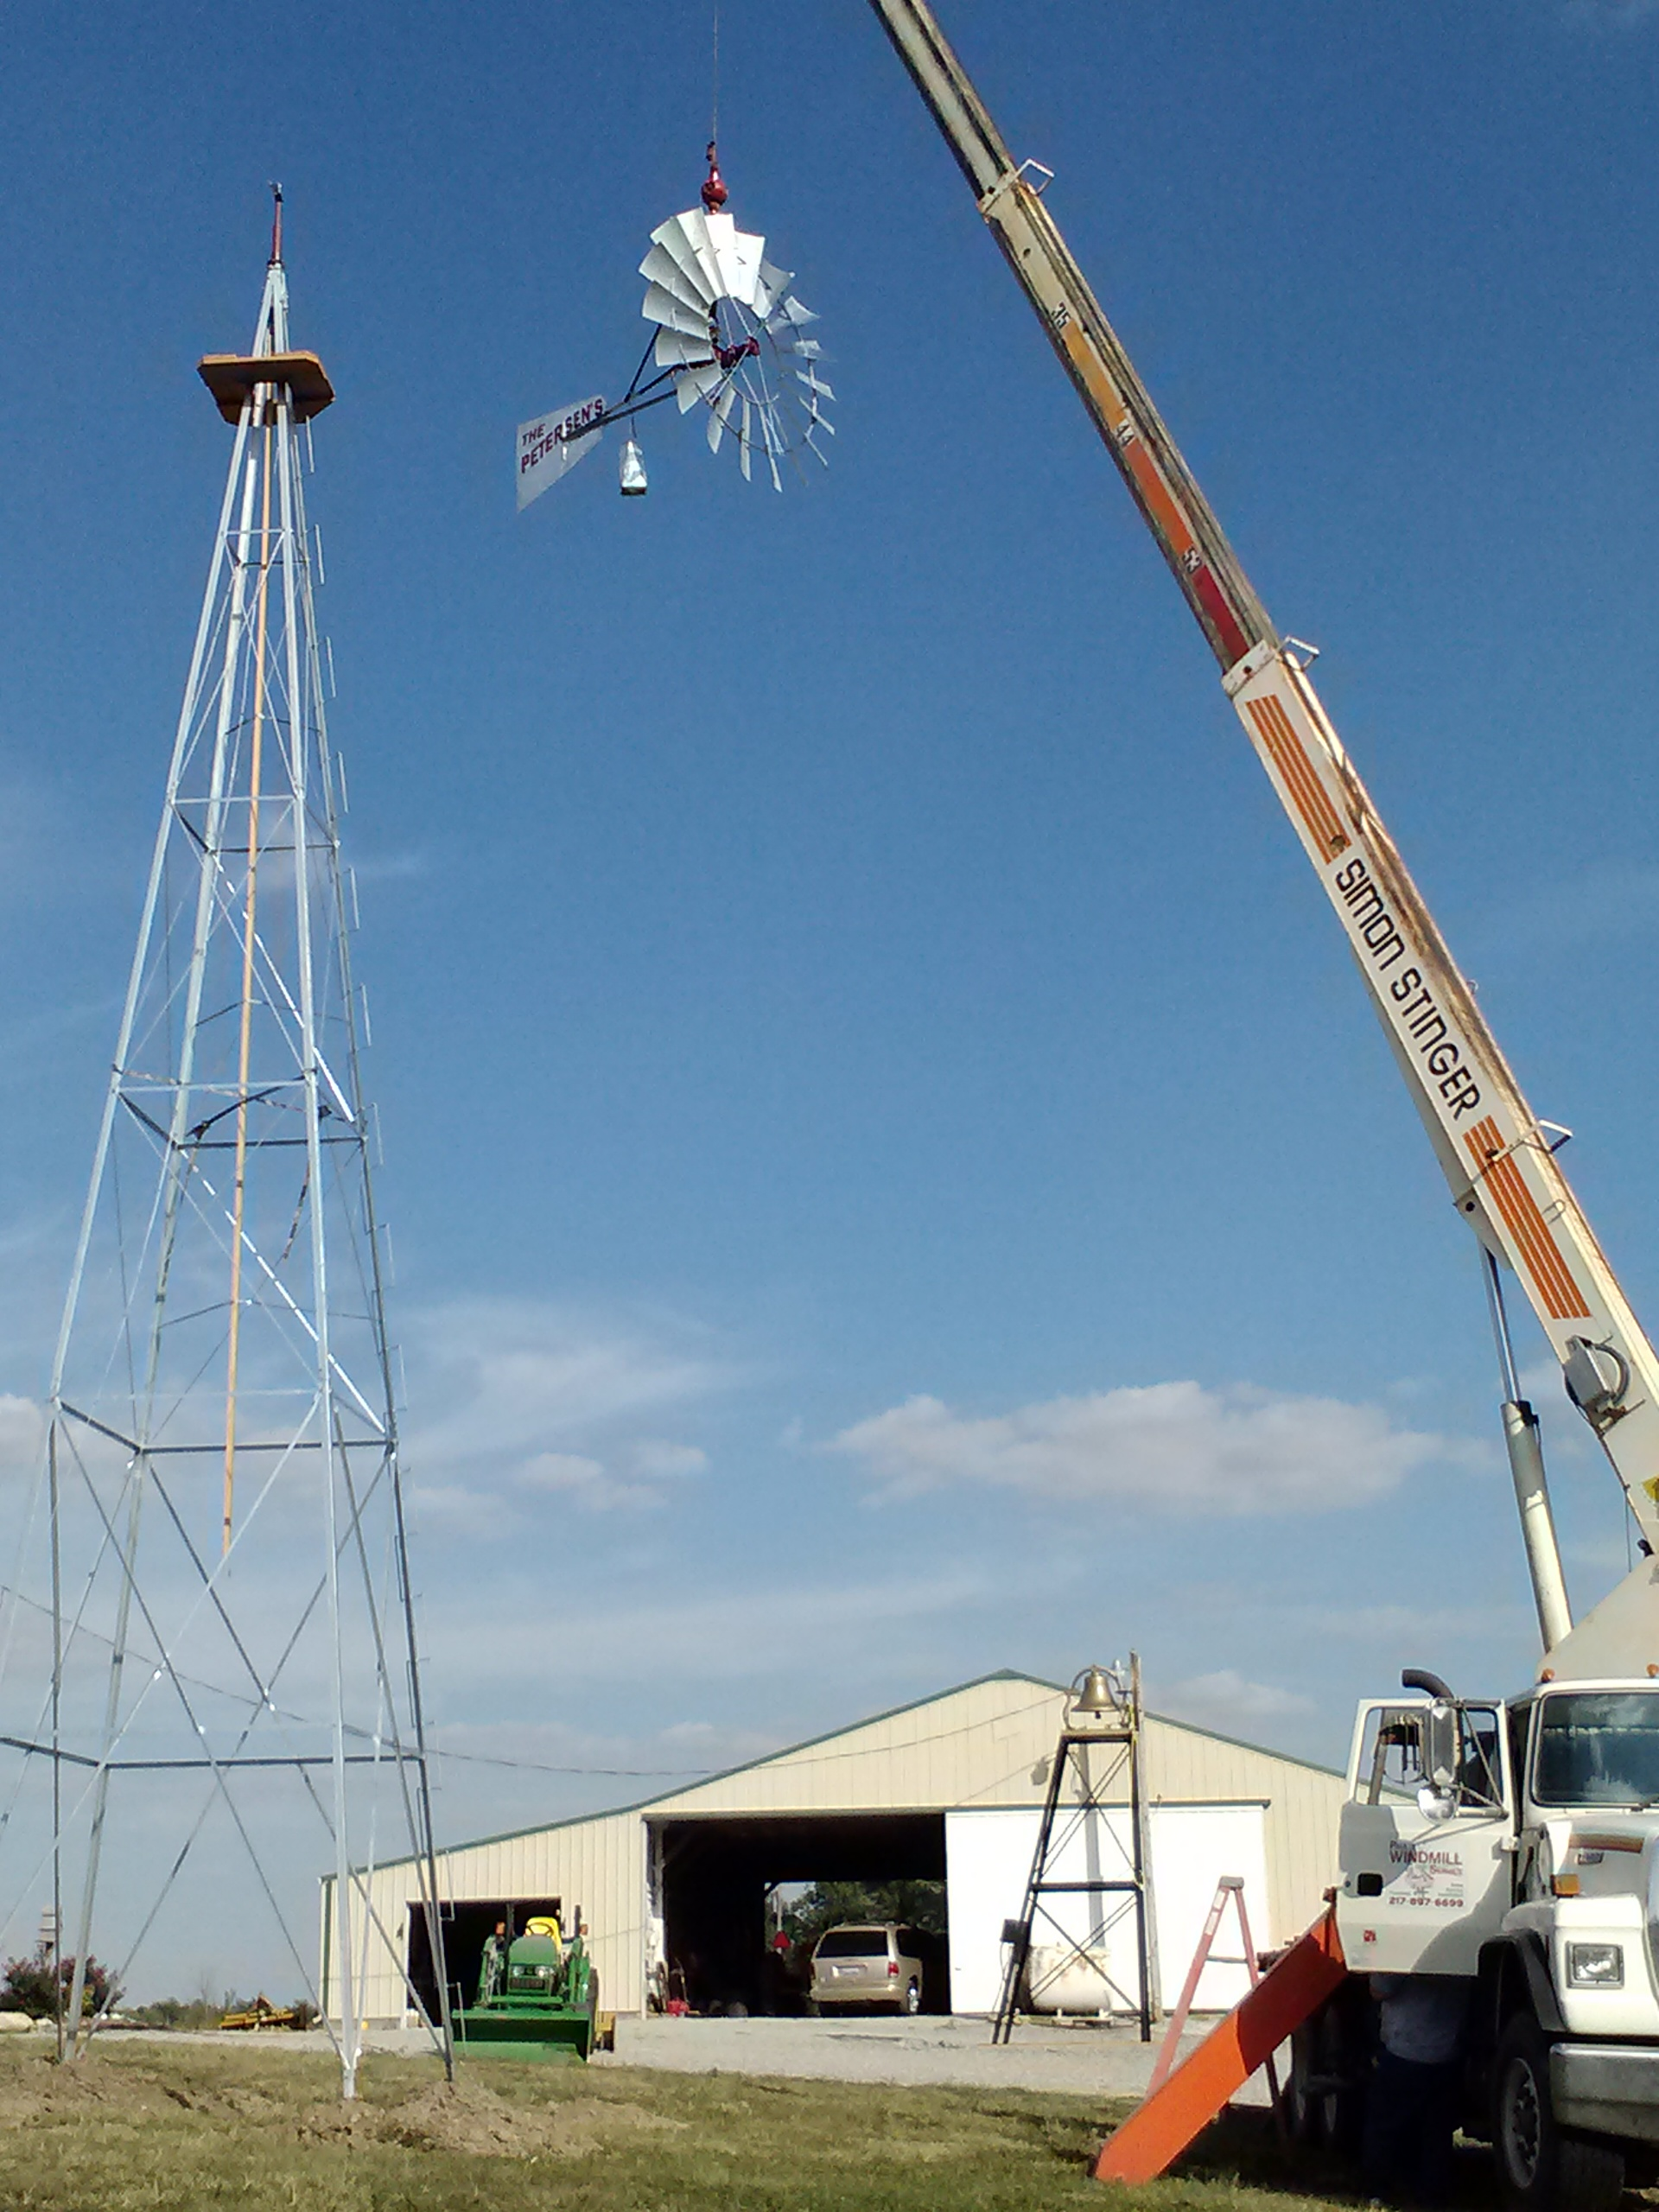 Beautiful Fall day to install a new windmill!